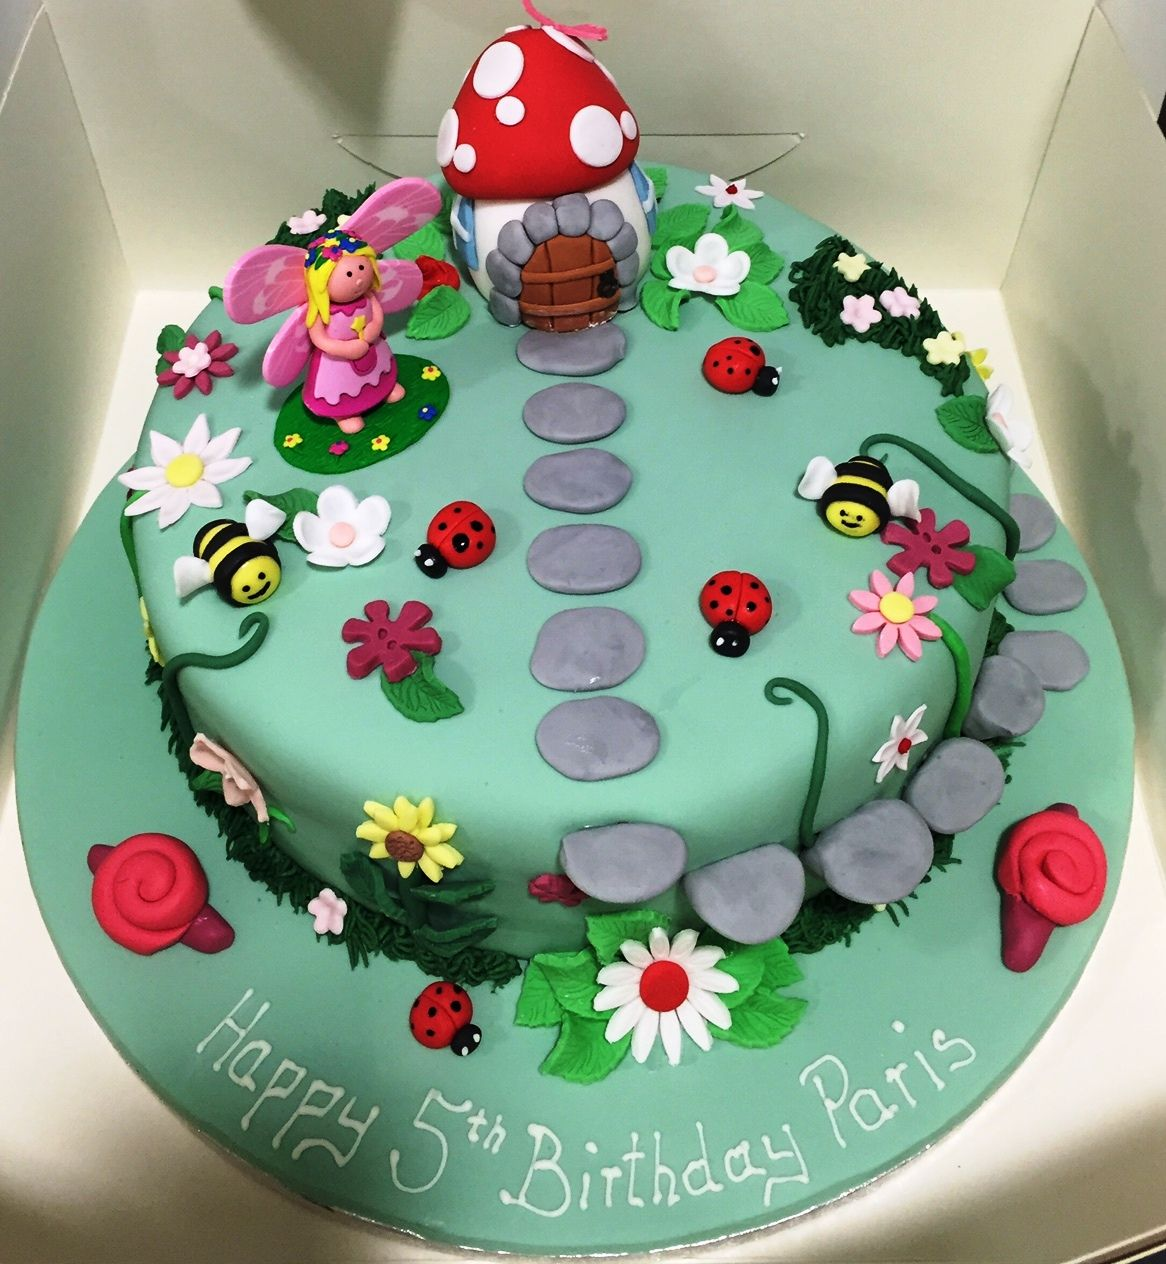 cake designs - Garden Design Birthday Cake